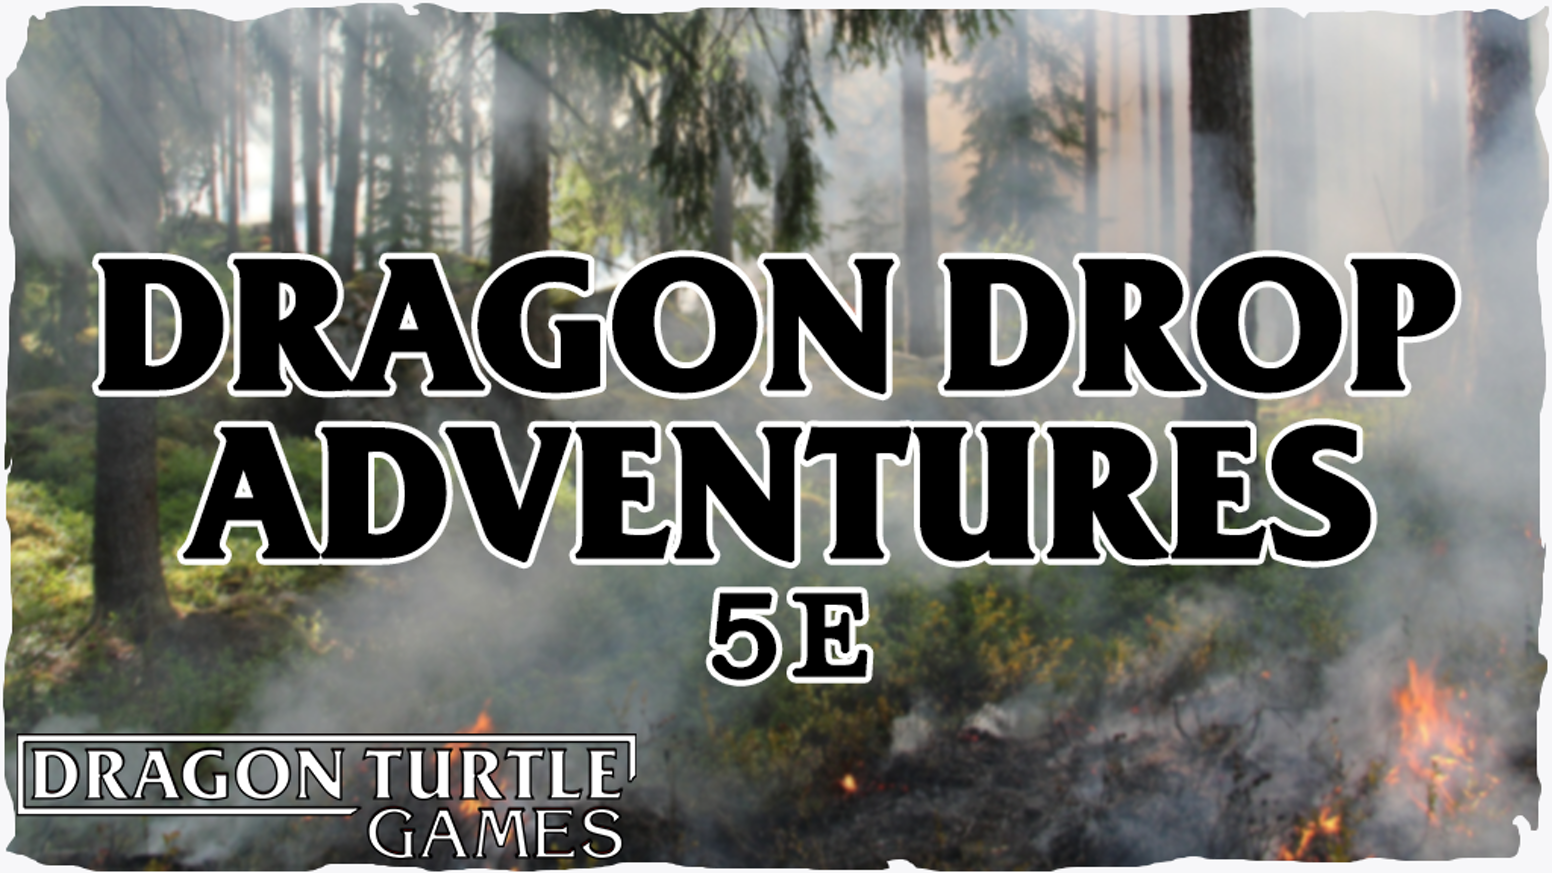 Dragon Drop Adventures are easy to implement, high octance, and fun, single session adventures for Dungeons & Dragons 5e.